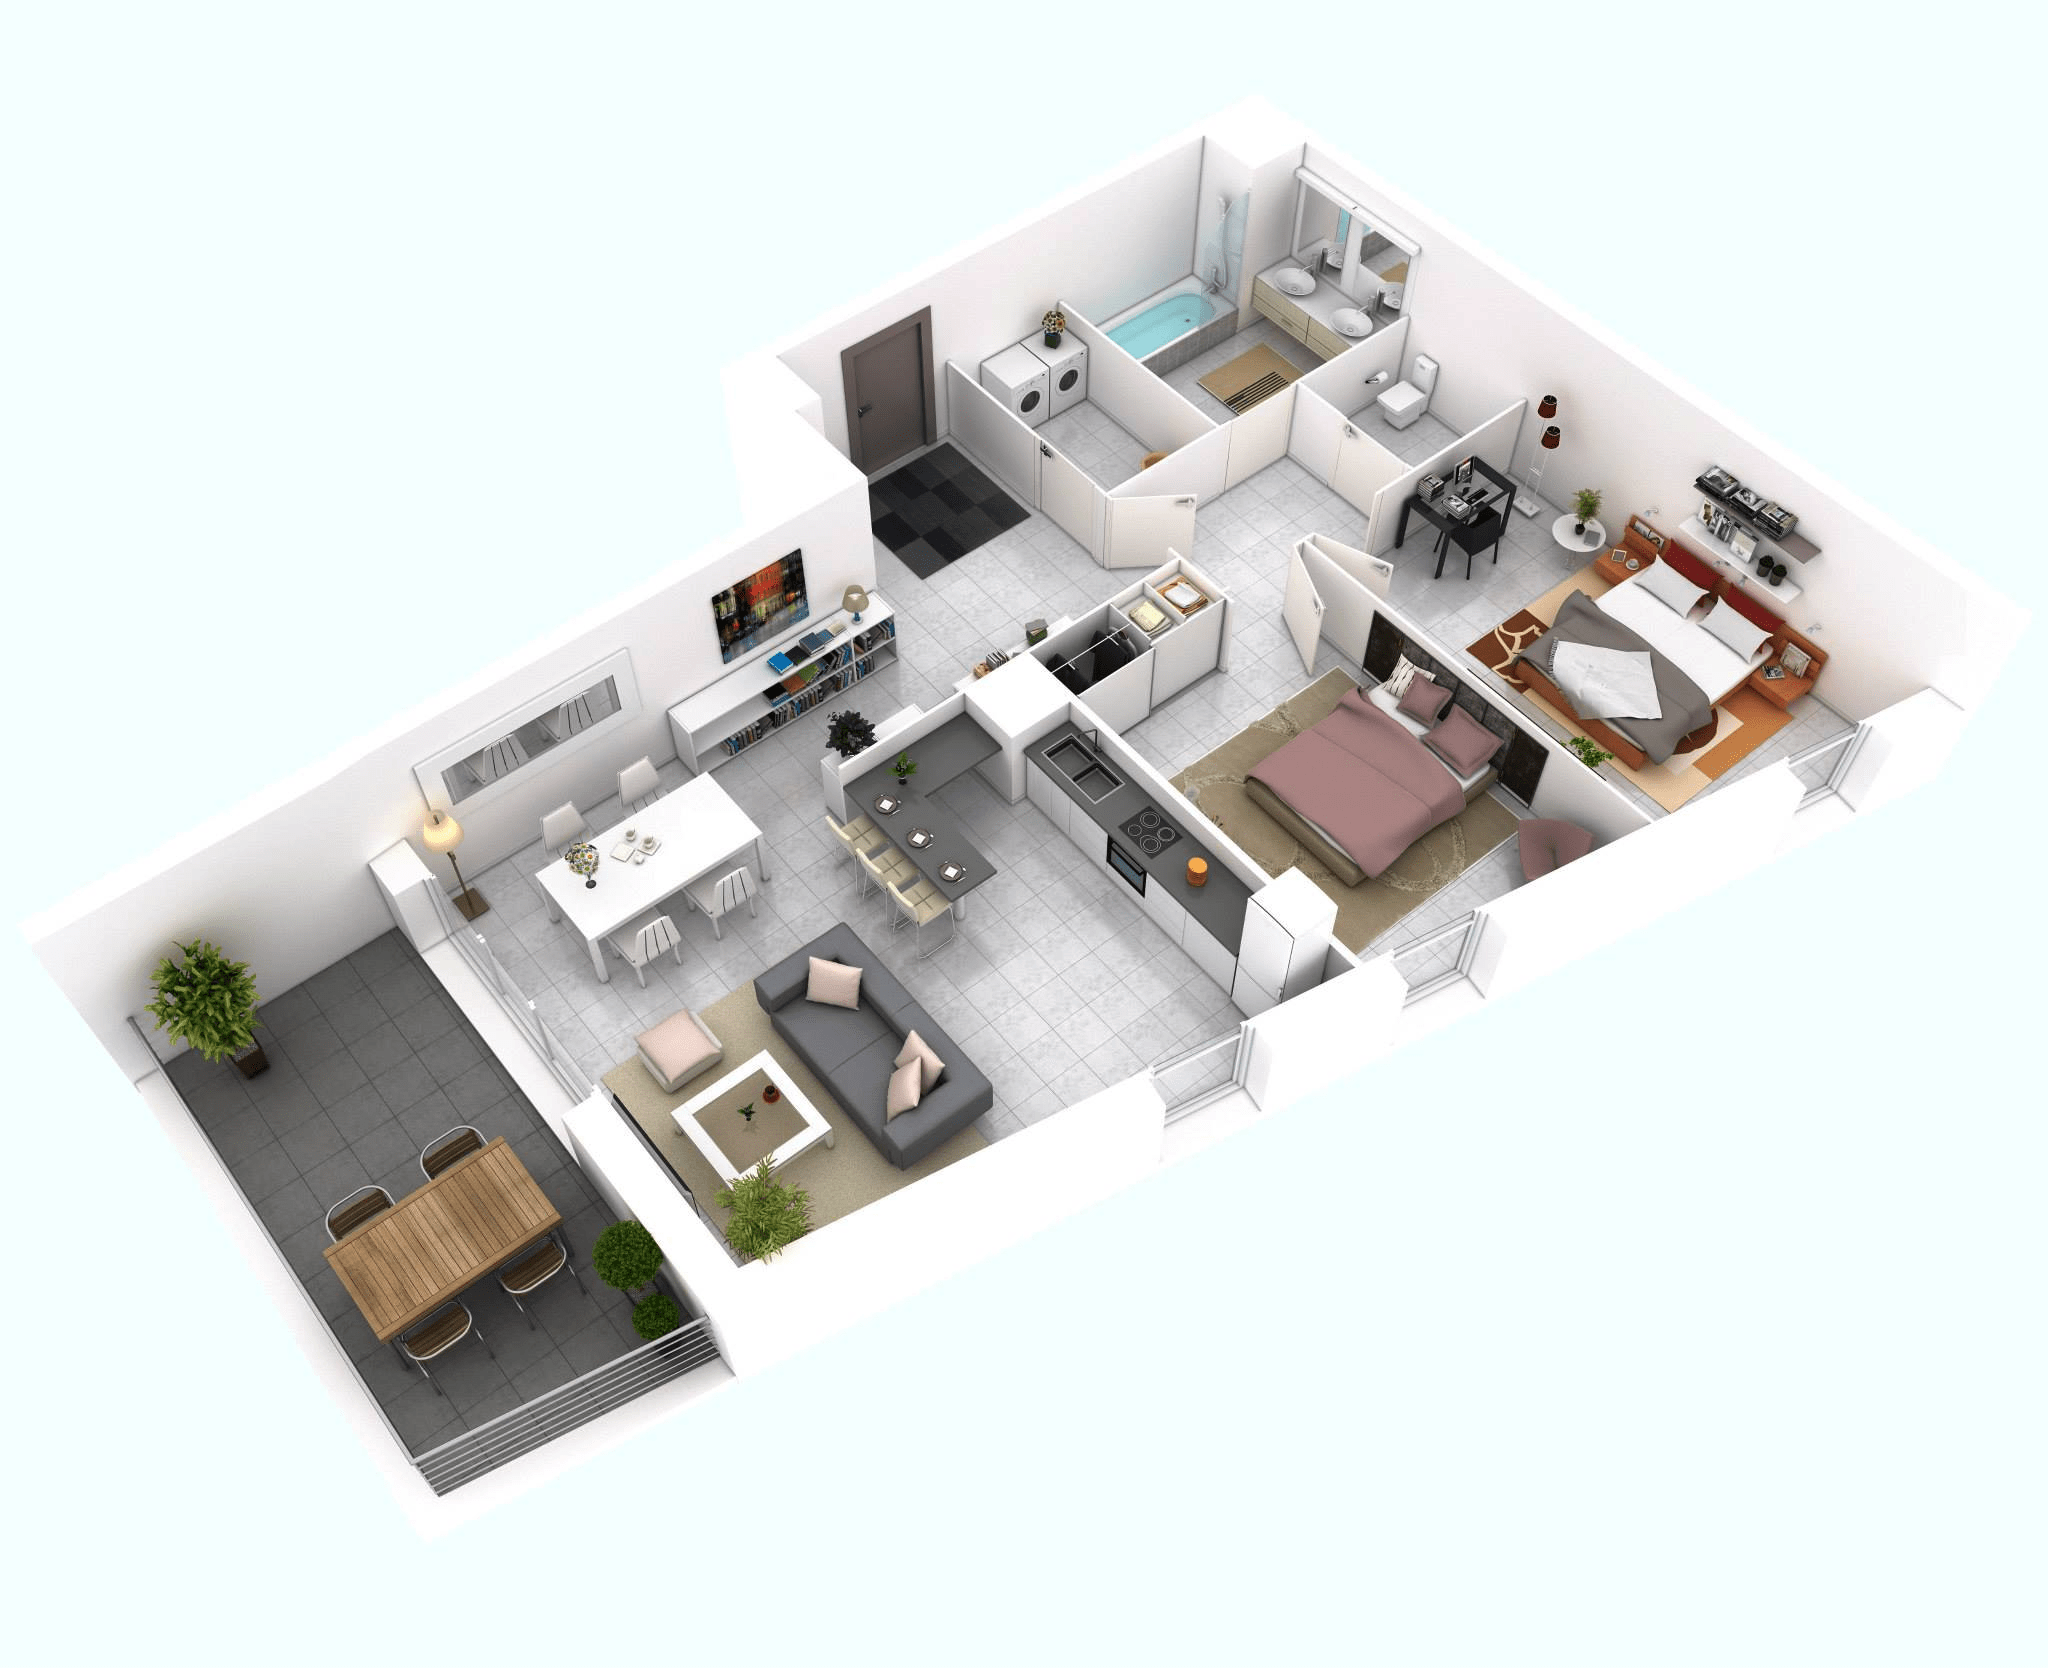 bedroom floor plans house layout row house layout modern house plan modern house plan